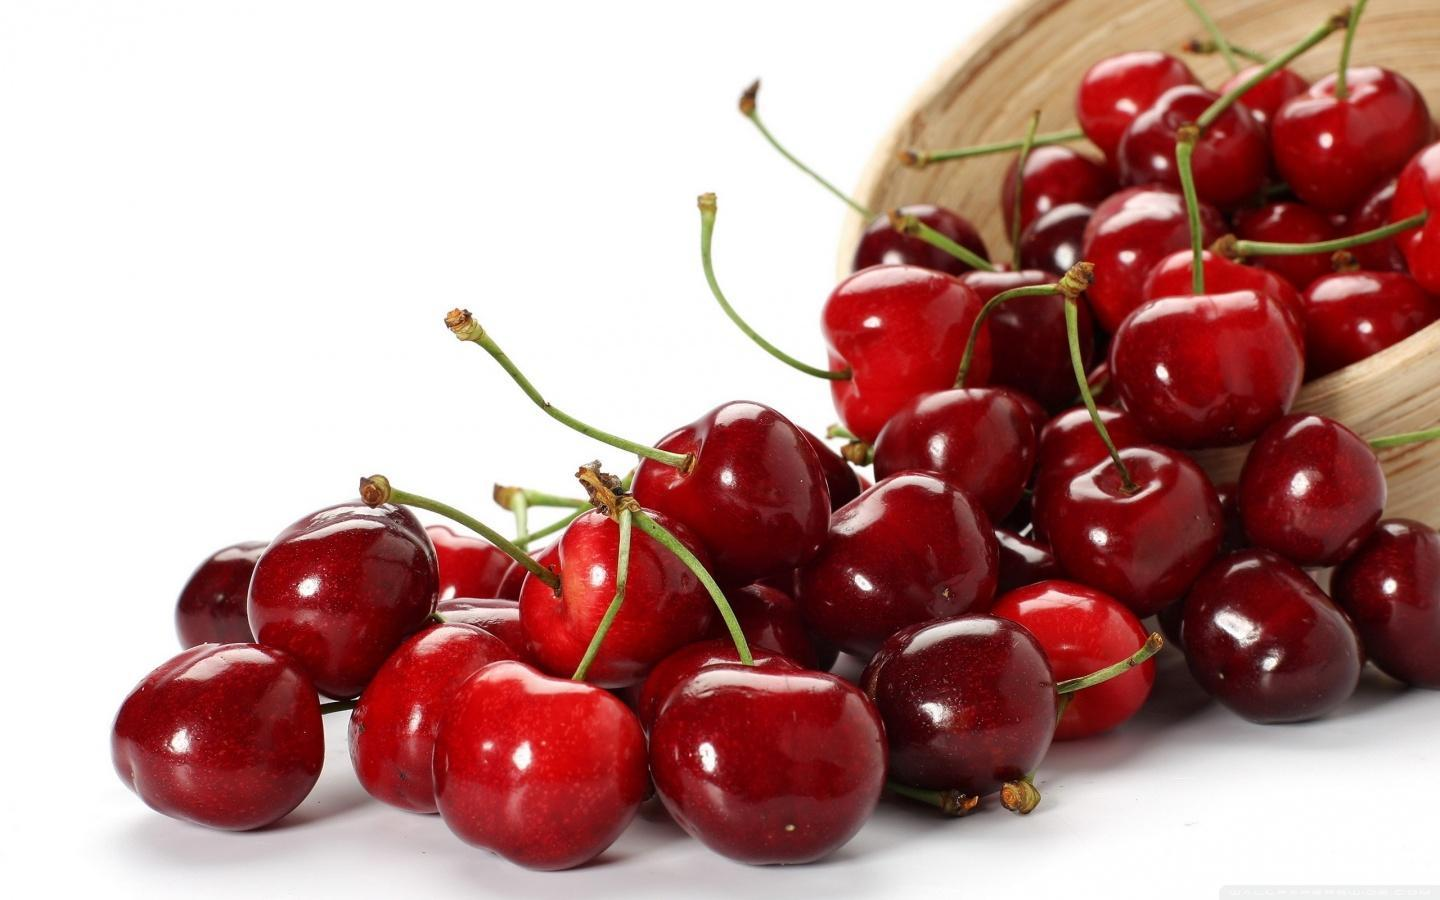 C:\Users\TOSHIBA\Desktop\cherries_time-1492559.jpg